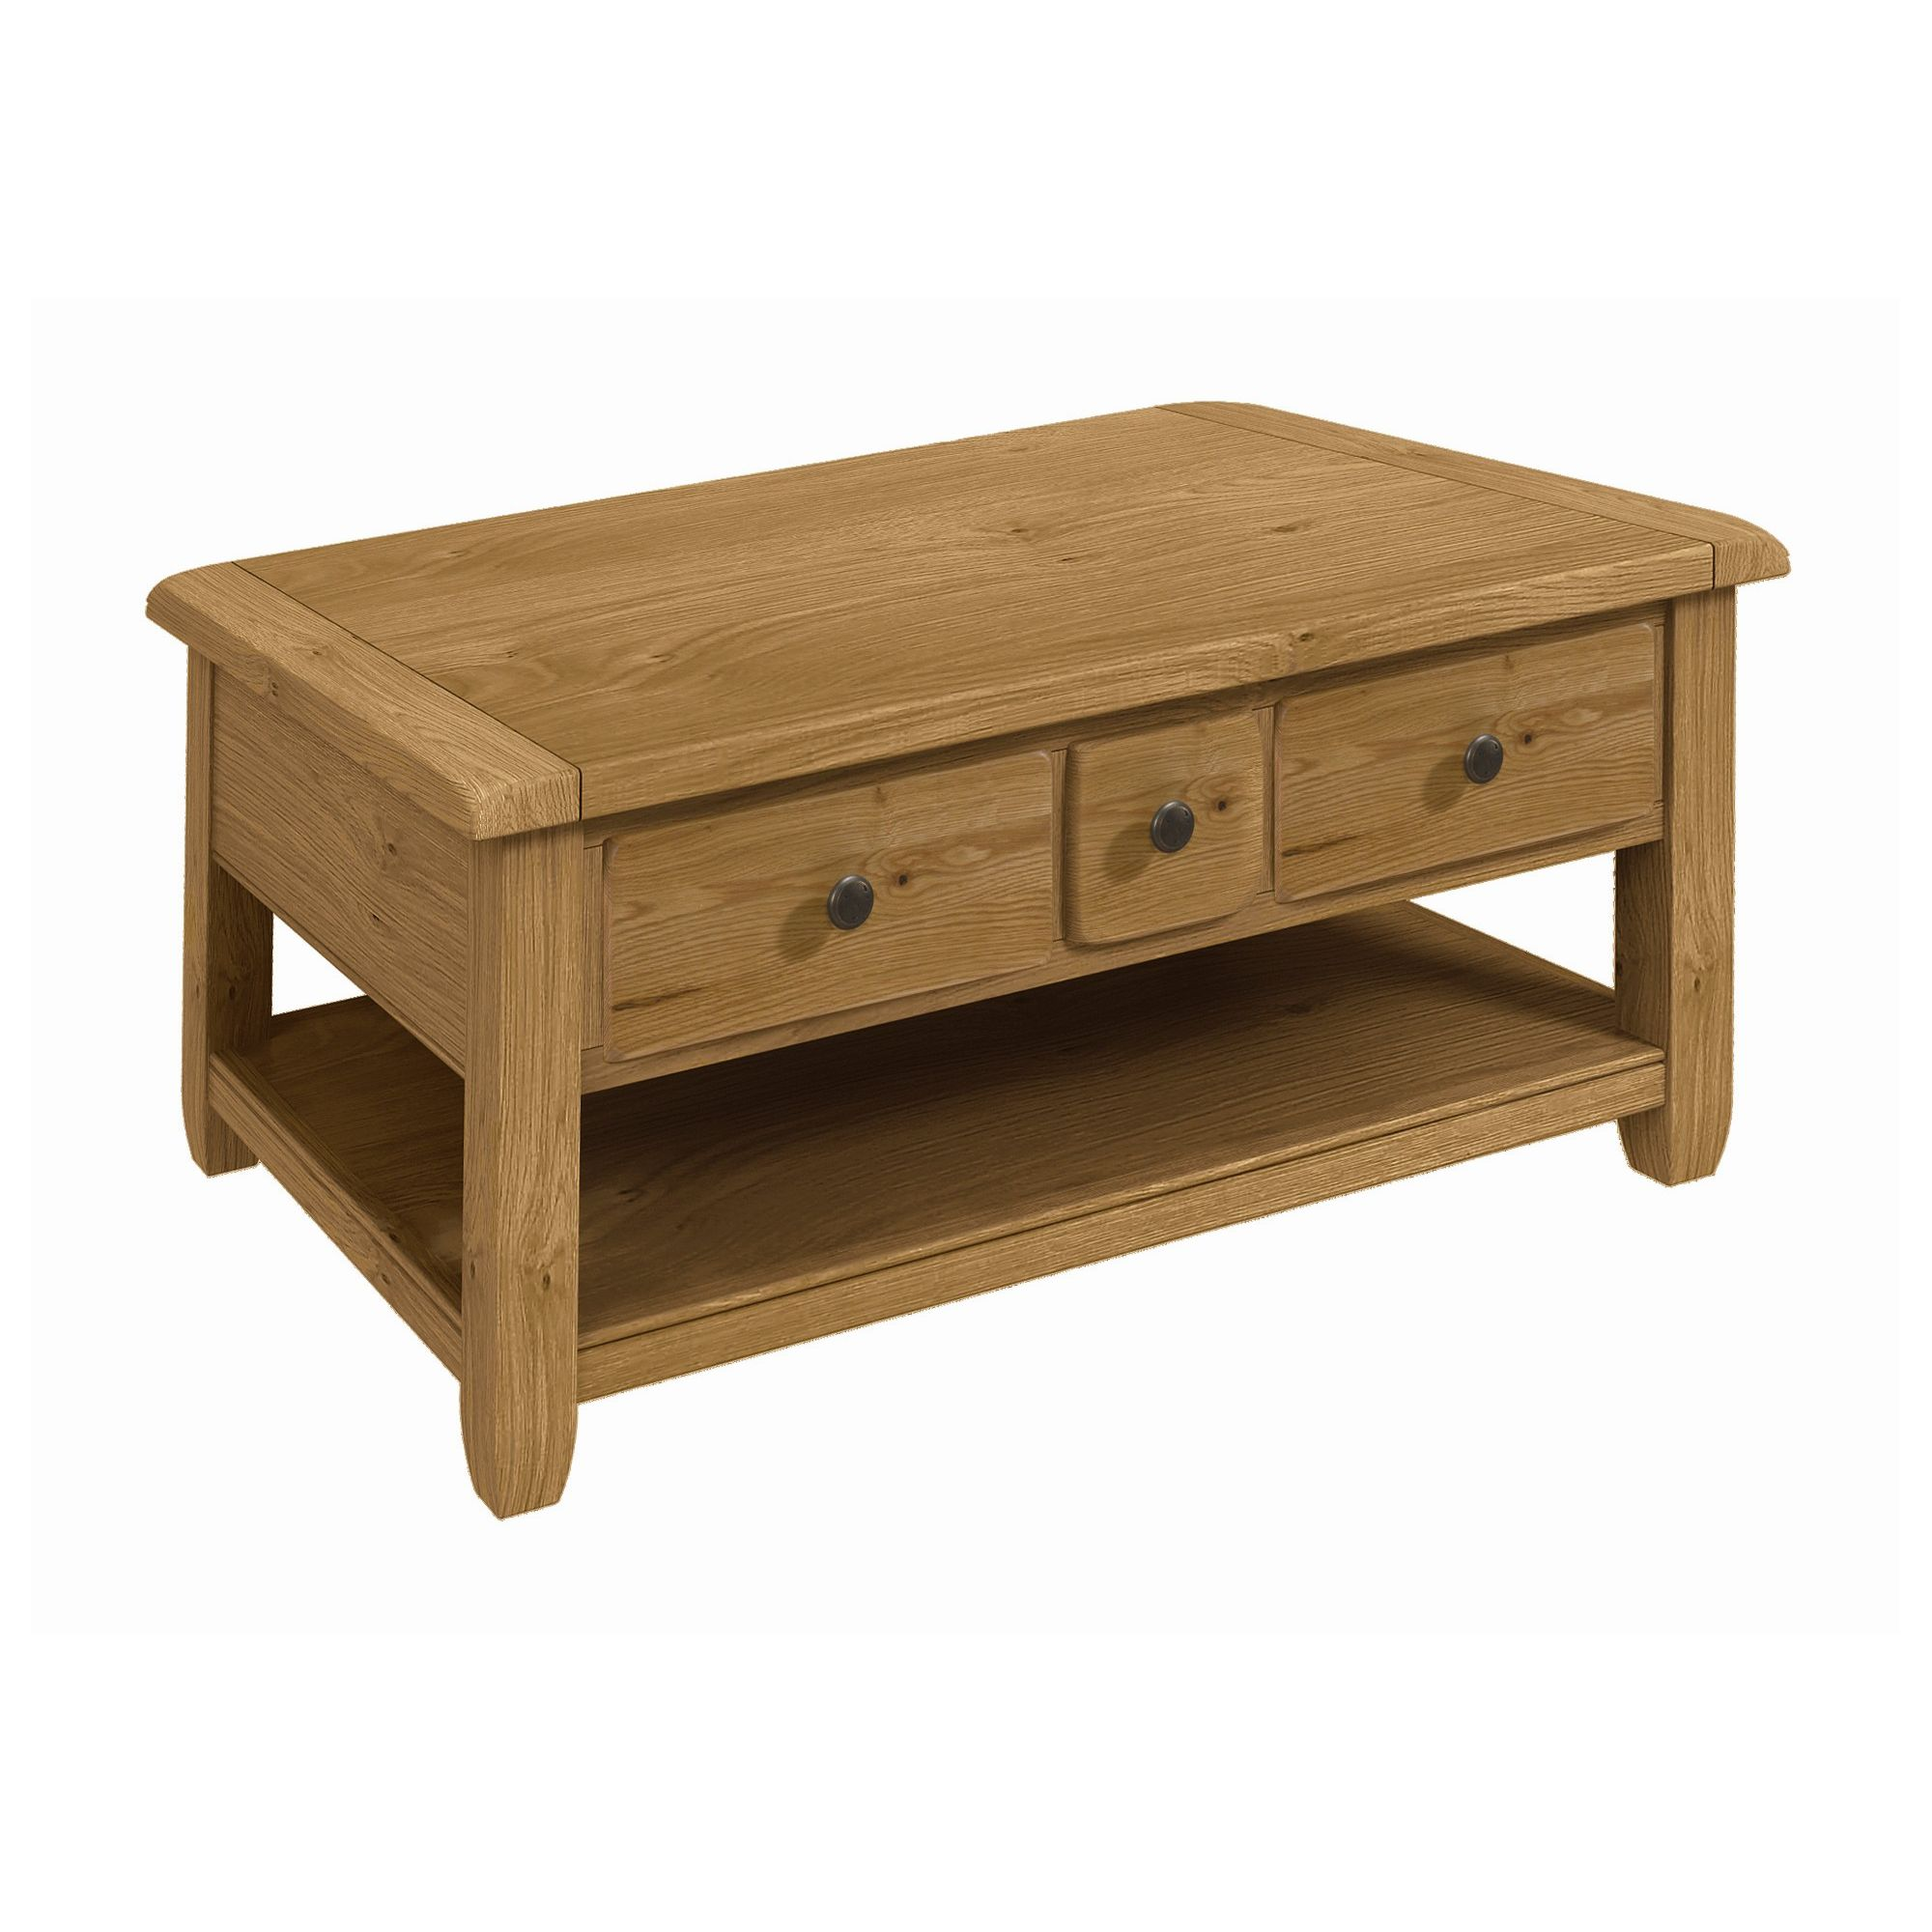 Alterton Furniture Cherry Creek Oak Storage Coffee Table at Tesco Direct